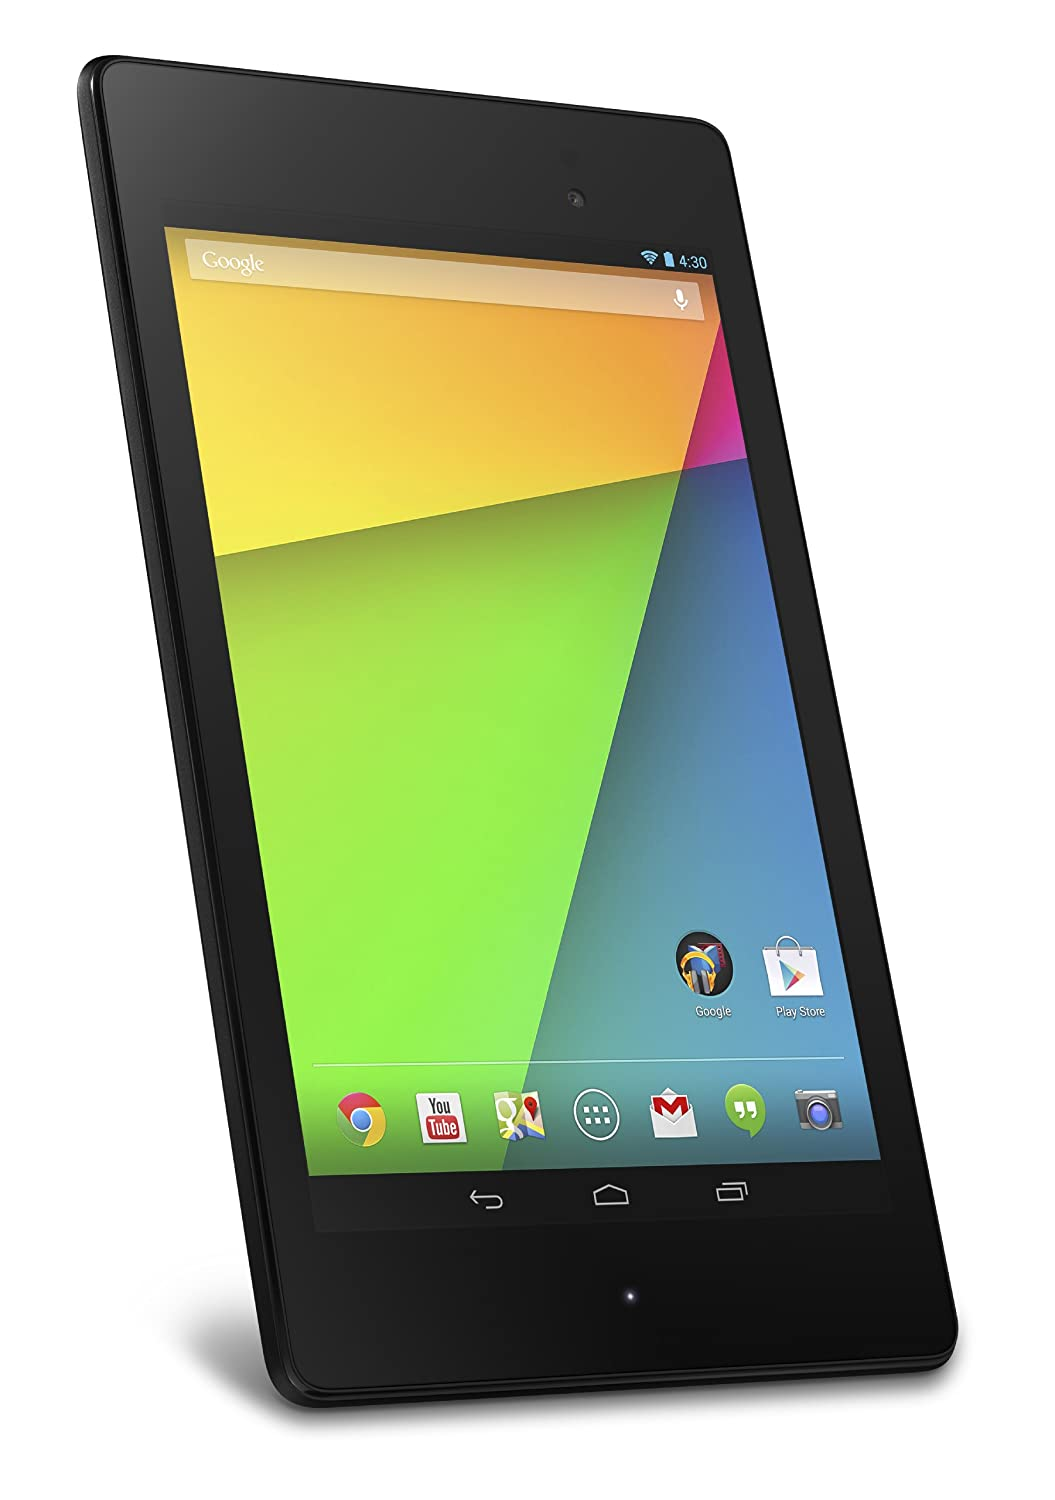 Google Nexus 7 FHD Tablet | 2nd Generation - Best Gadgets Outlet